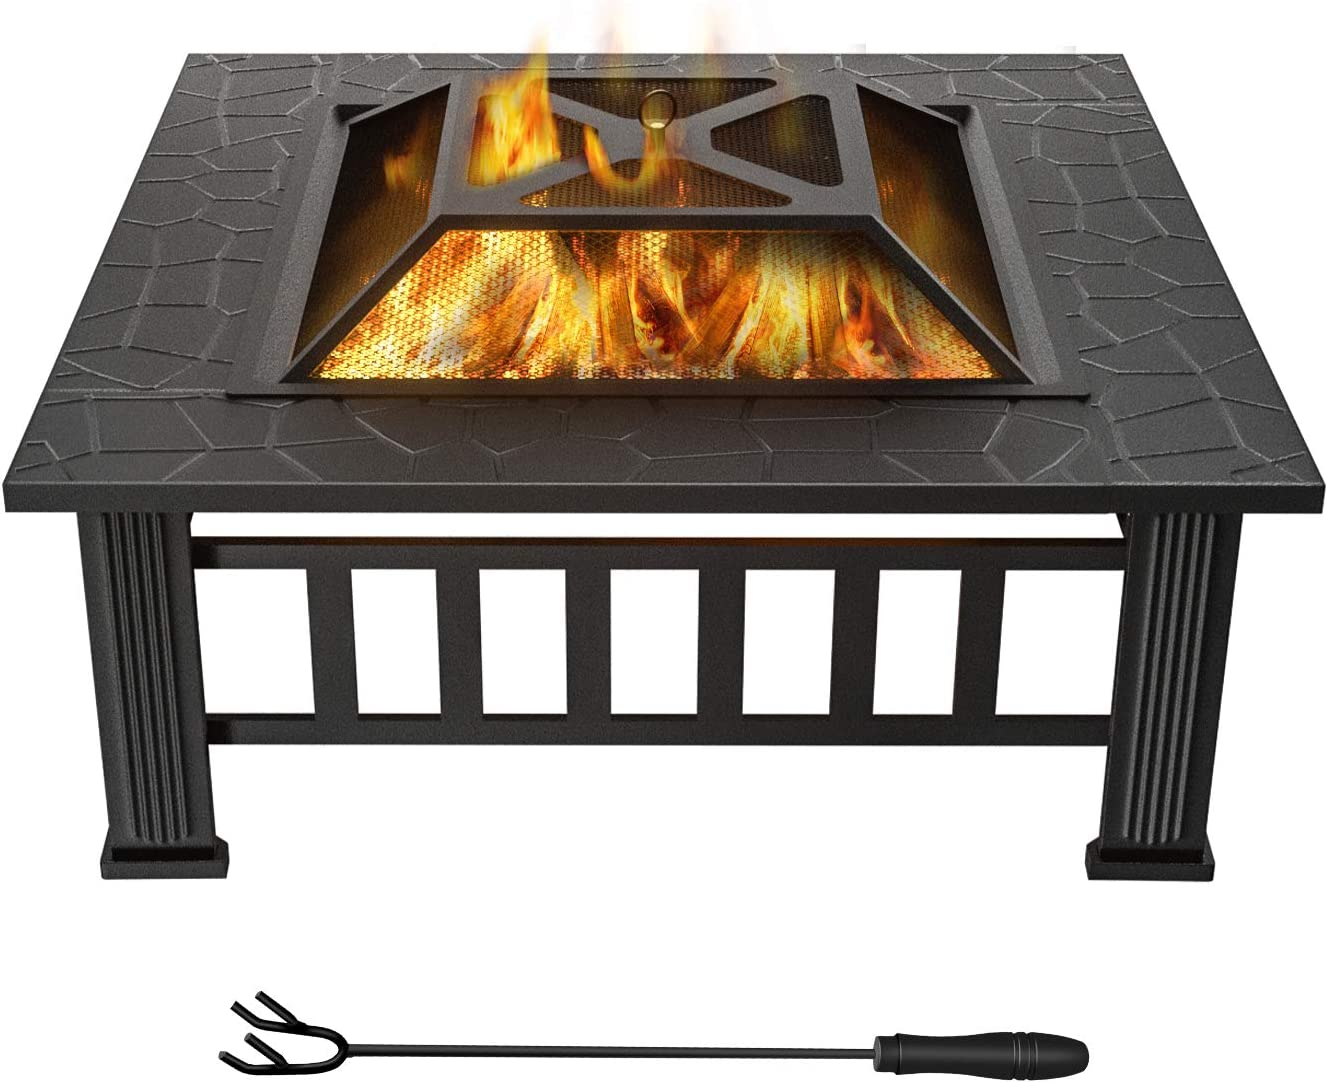 WINWEND Fire Pit Outdoor Wood Burning, 32in Firepit with Spark Screen, Waterproof Cover, Poker, Square Firepit for Patio Backyard Garden